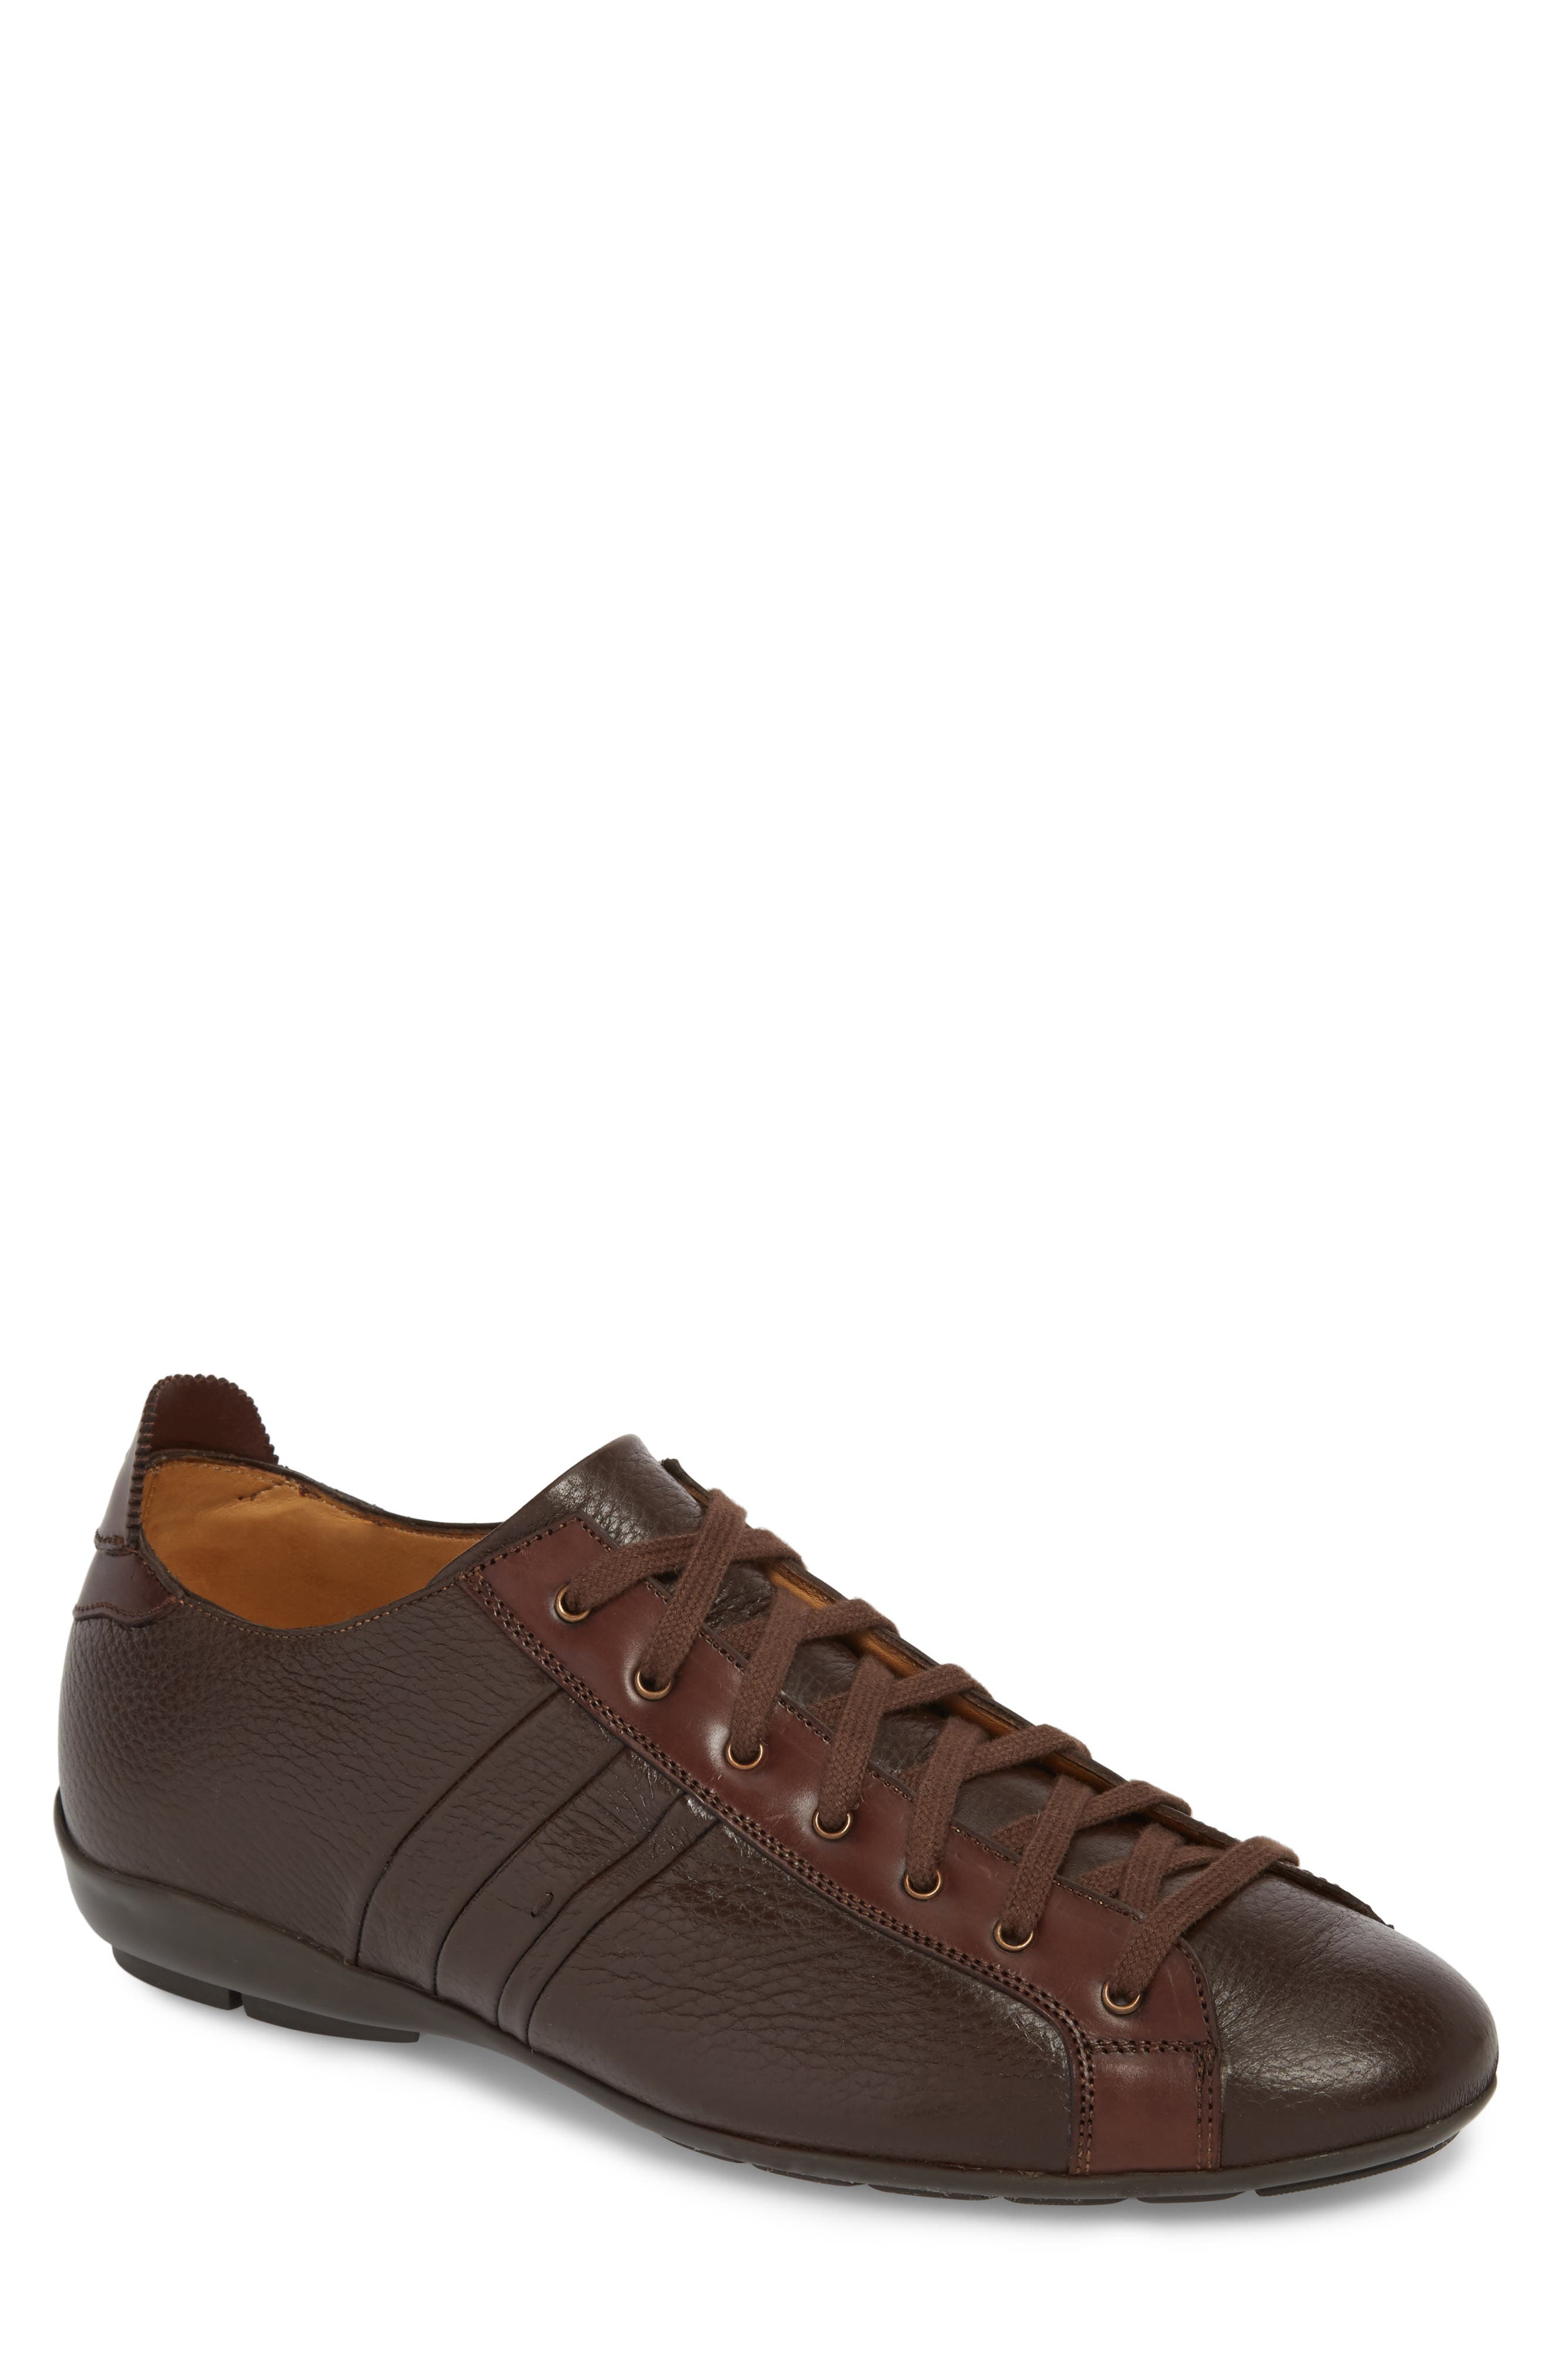 Tiberio Sneaker in Brown